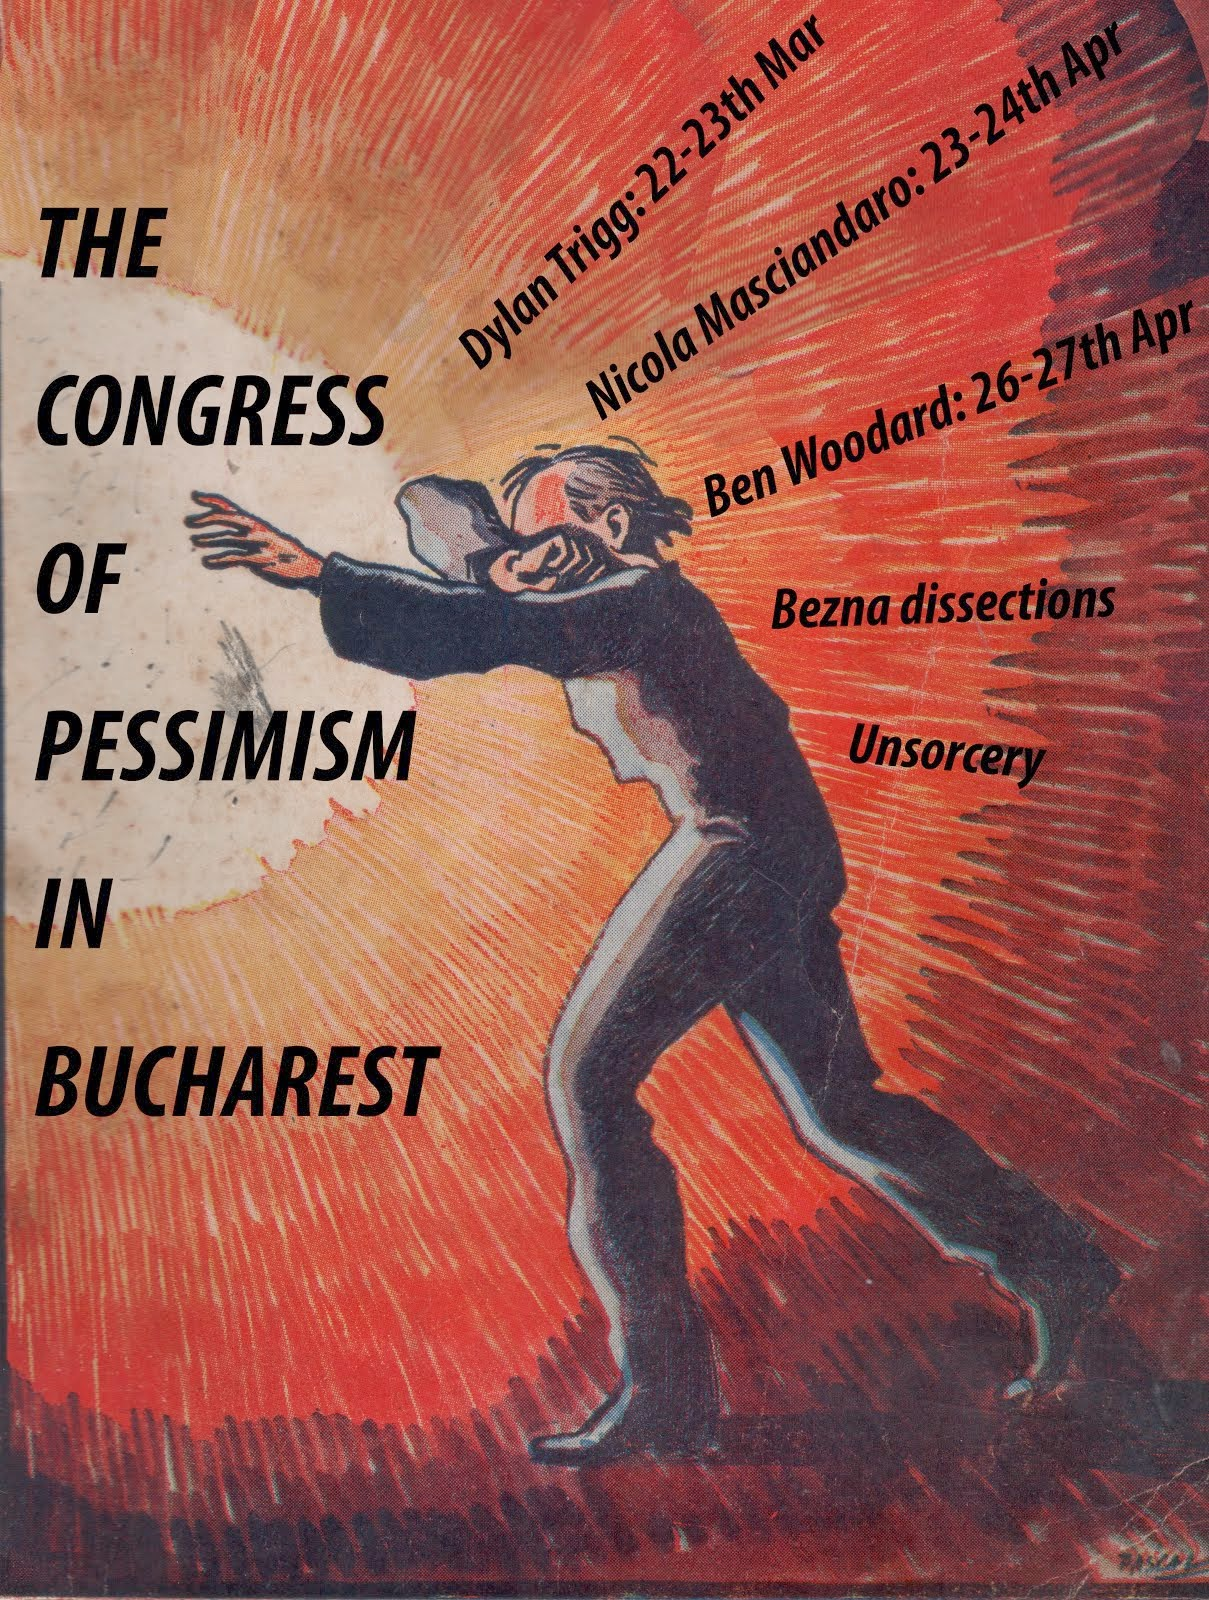 Congress of Pessimism